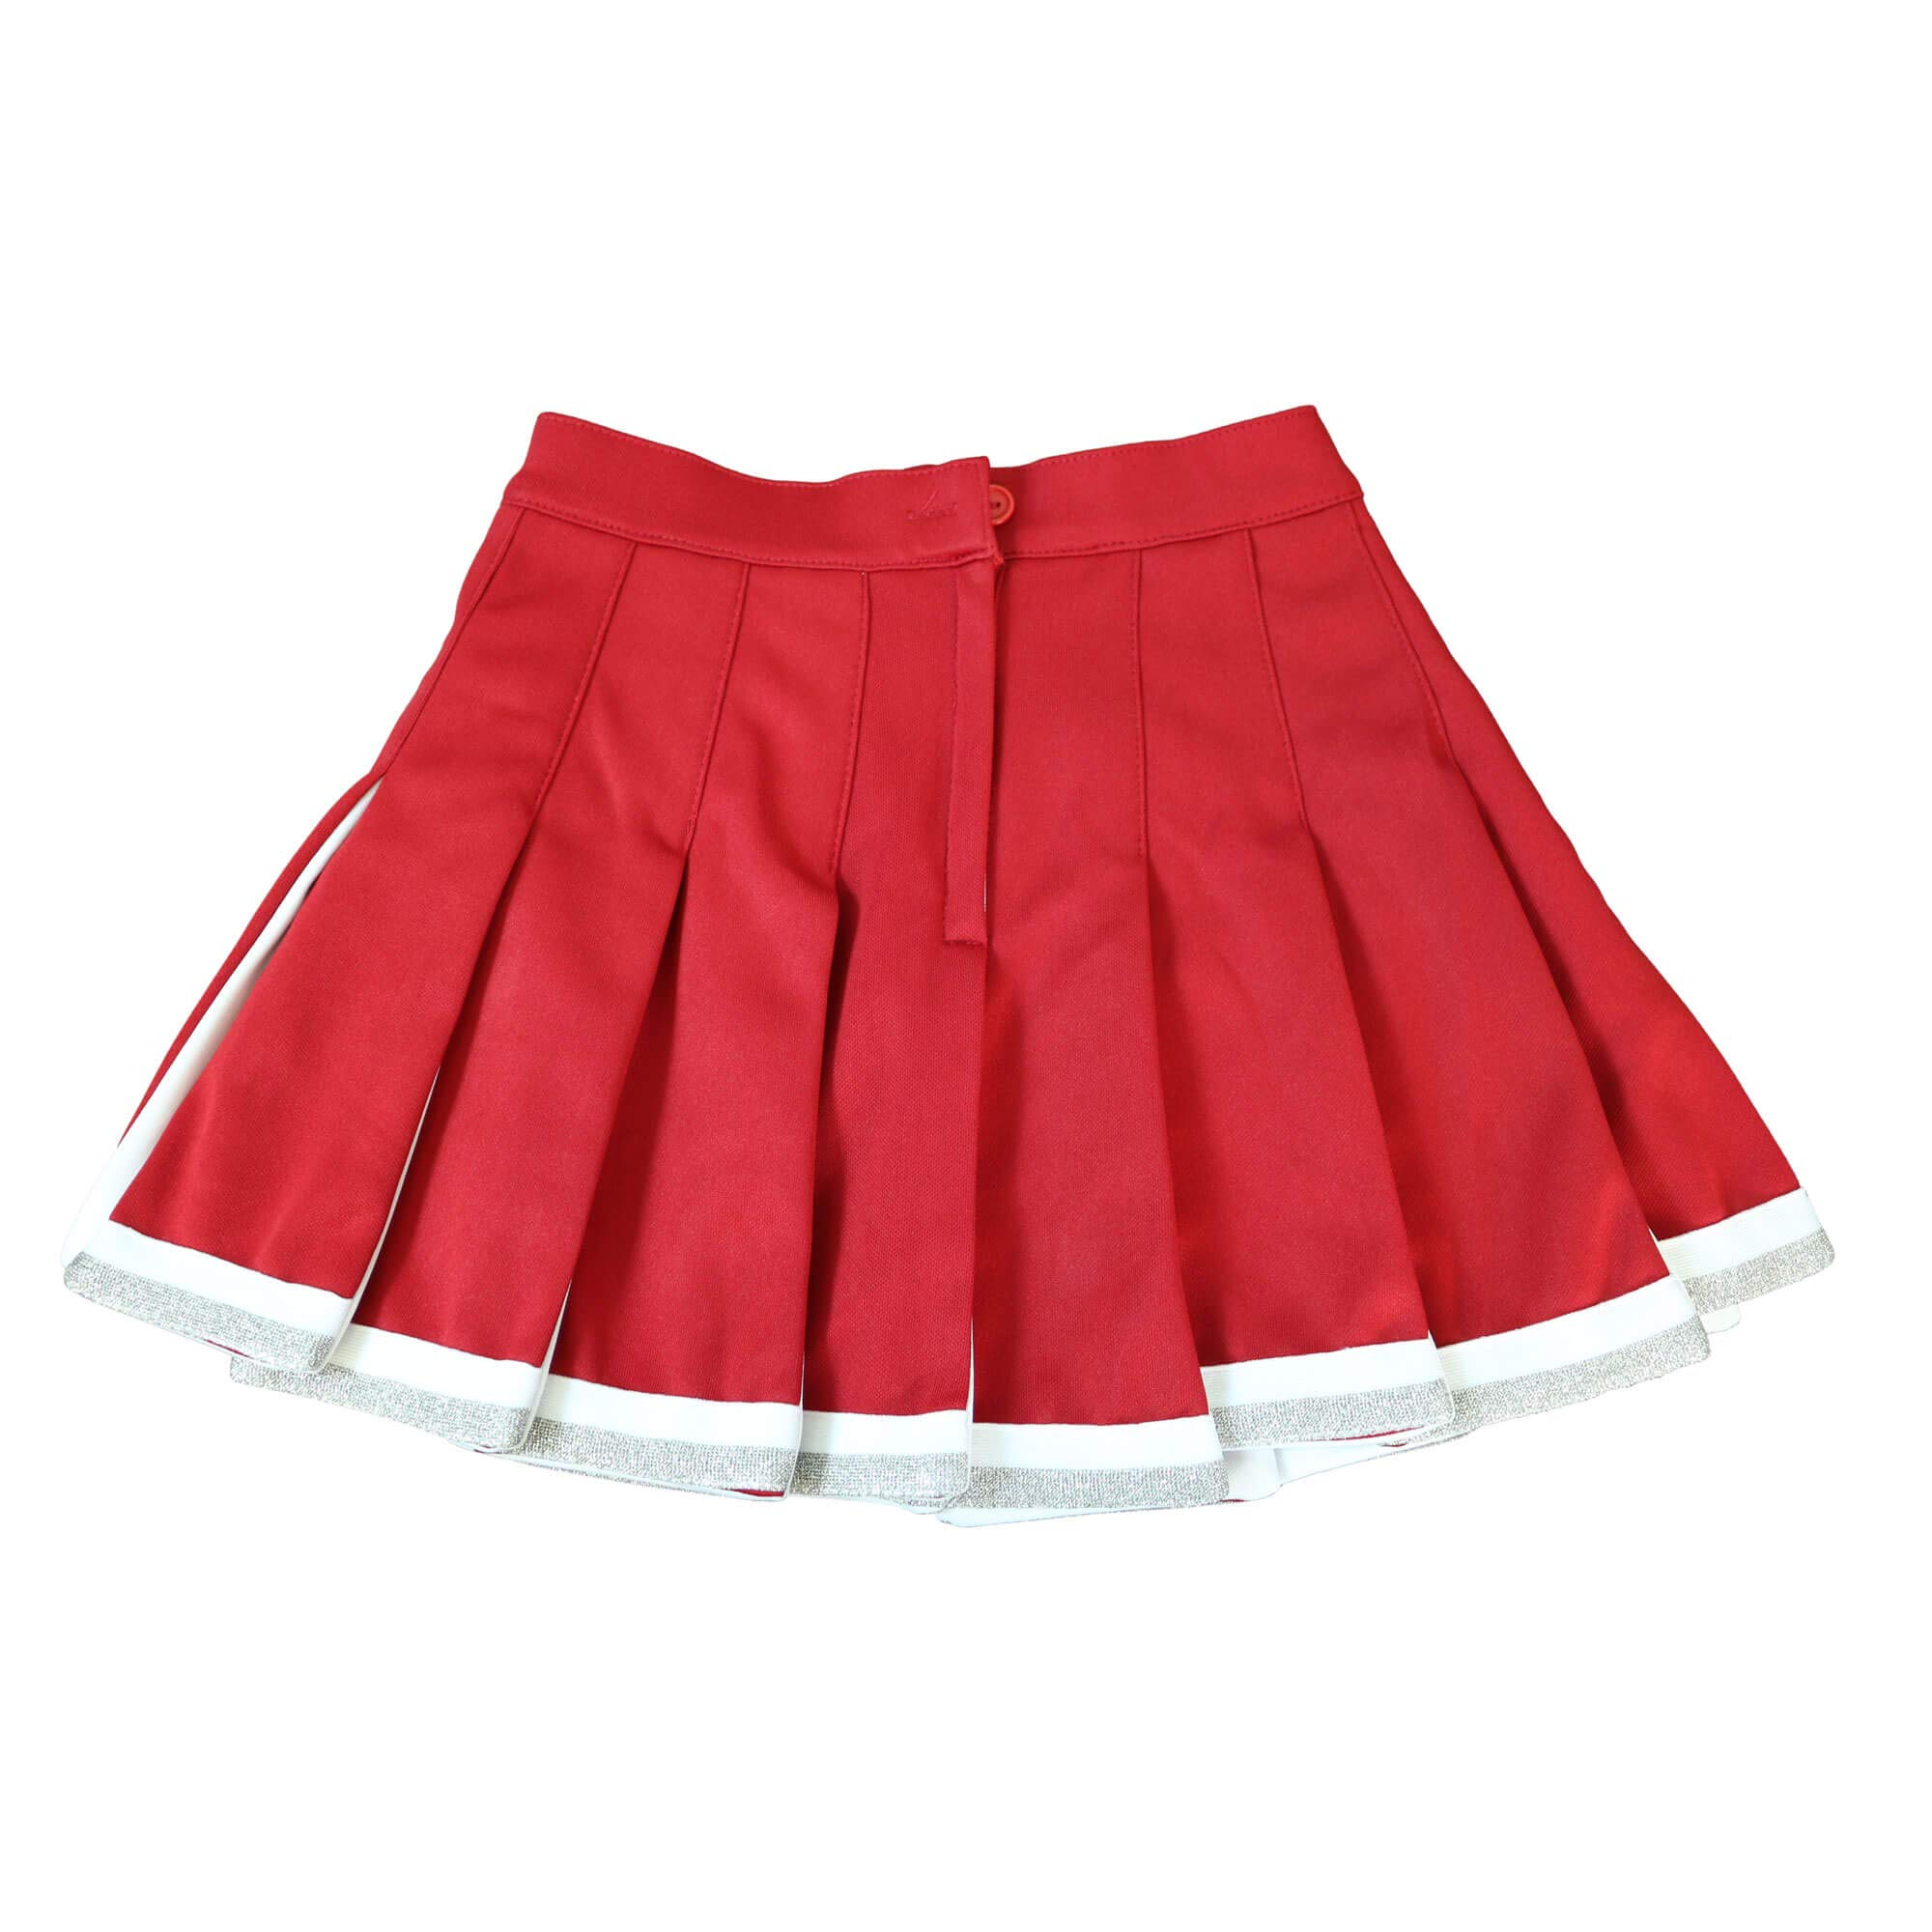 Danzcue Child Cheerleading Pleated Skirt, Scarlet-White, Small by Danzcue